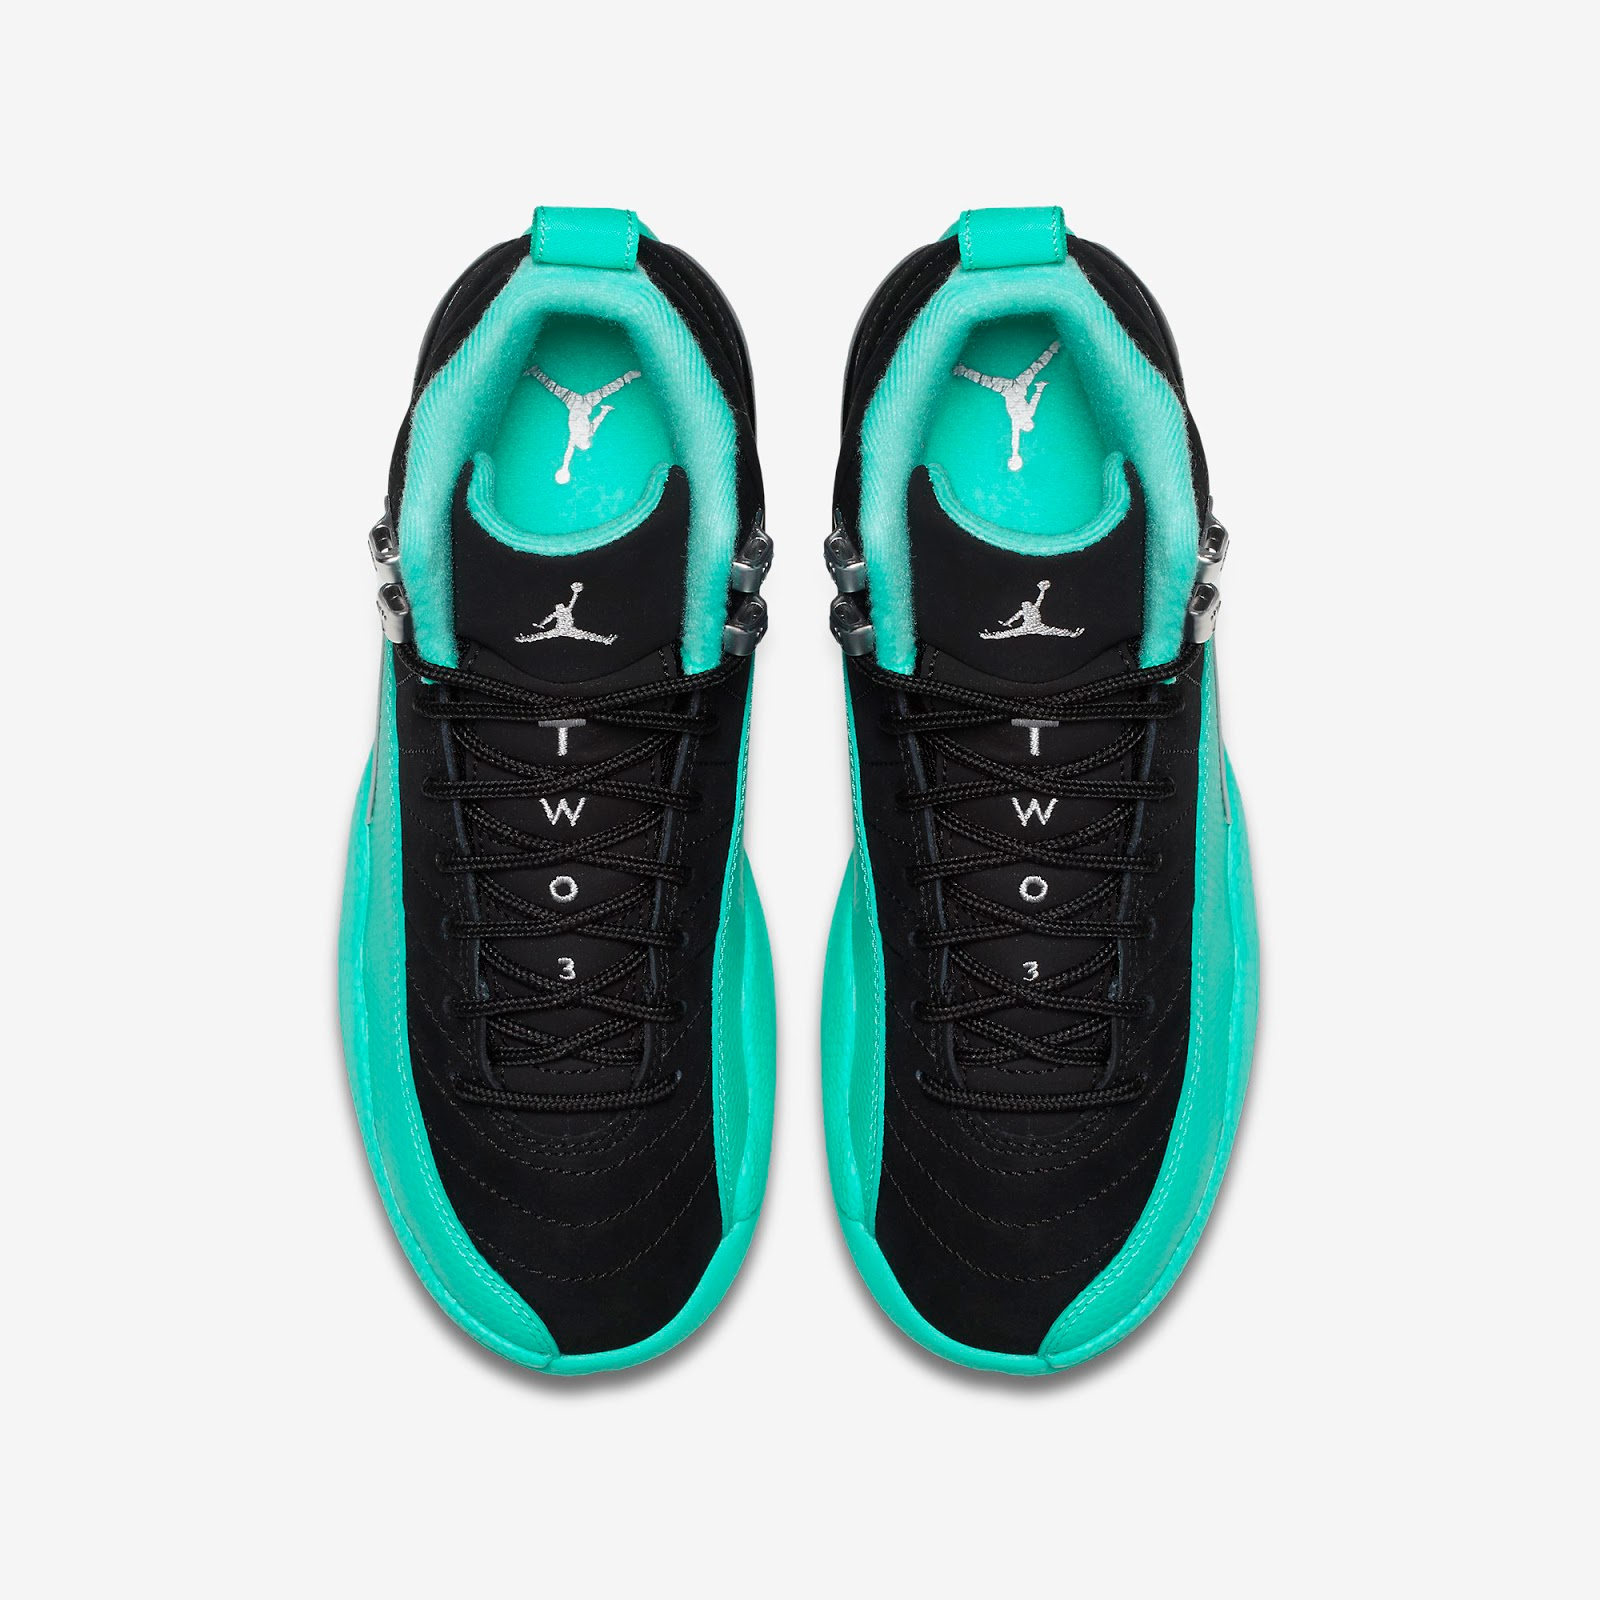 finest selection a2284 dbed6 ajordanxi Your  1 Source For Sneaker Release Dates  Girls Air Jordan 12  Retro GG Black Metallic Silver-Hyper Jade Release Reminder